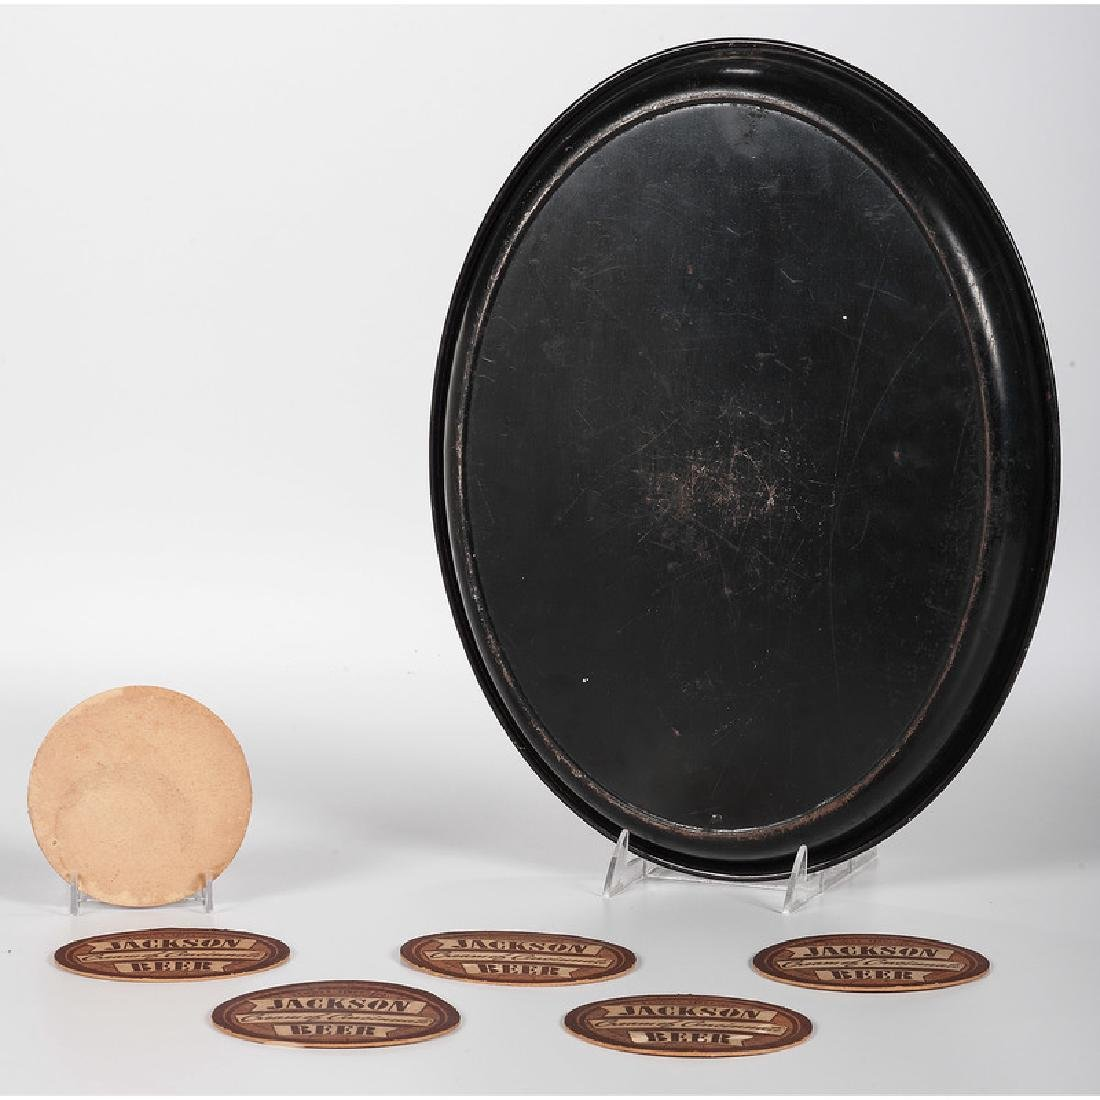 Jackson Brewing Co. Tray and Coasters - 2